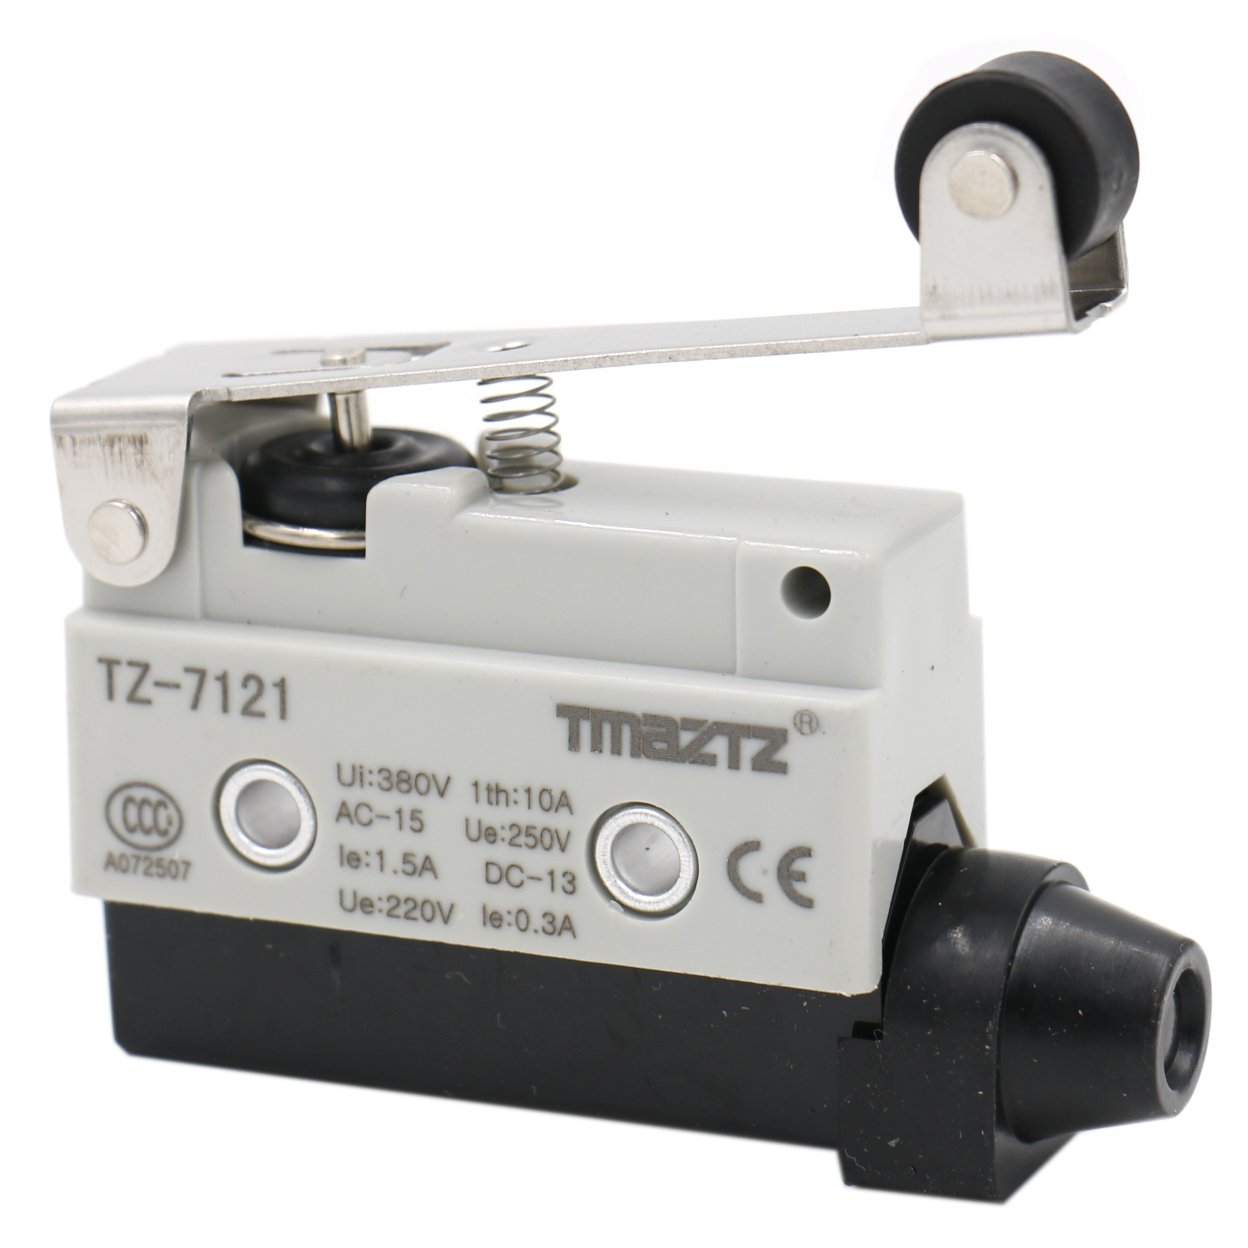 Heschen Horizontal limit switch TZ-7121 momentray long roller lever actuator AC 380V 10A single pole Yongde Industrial switch